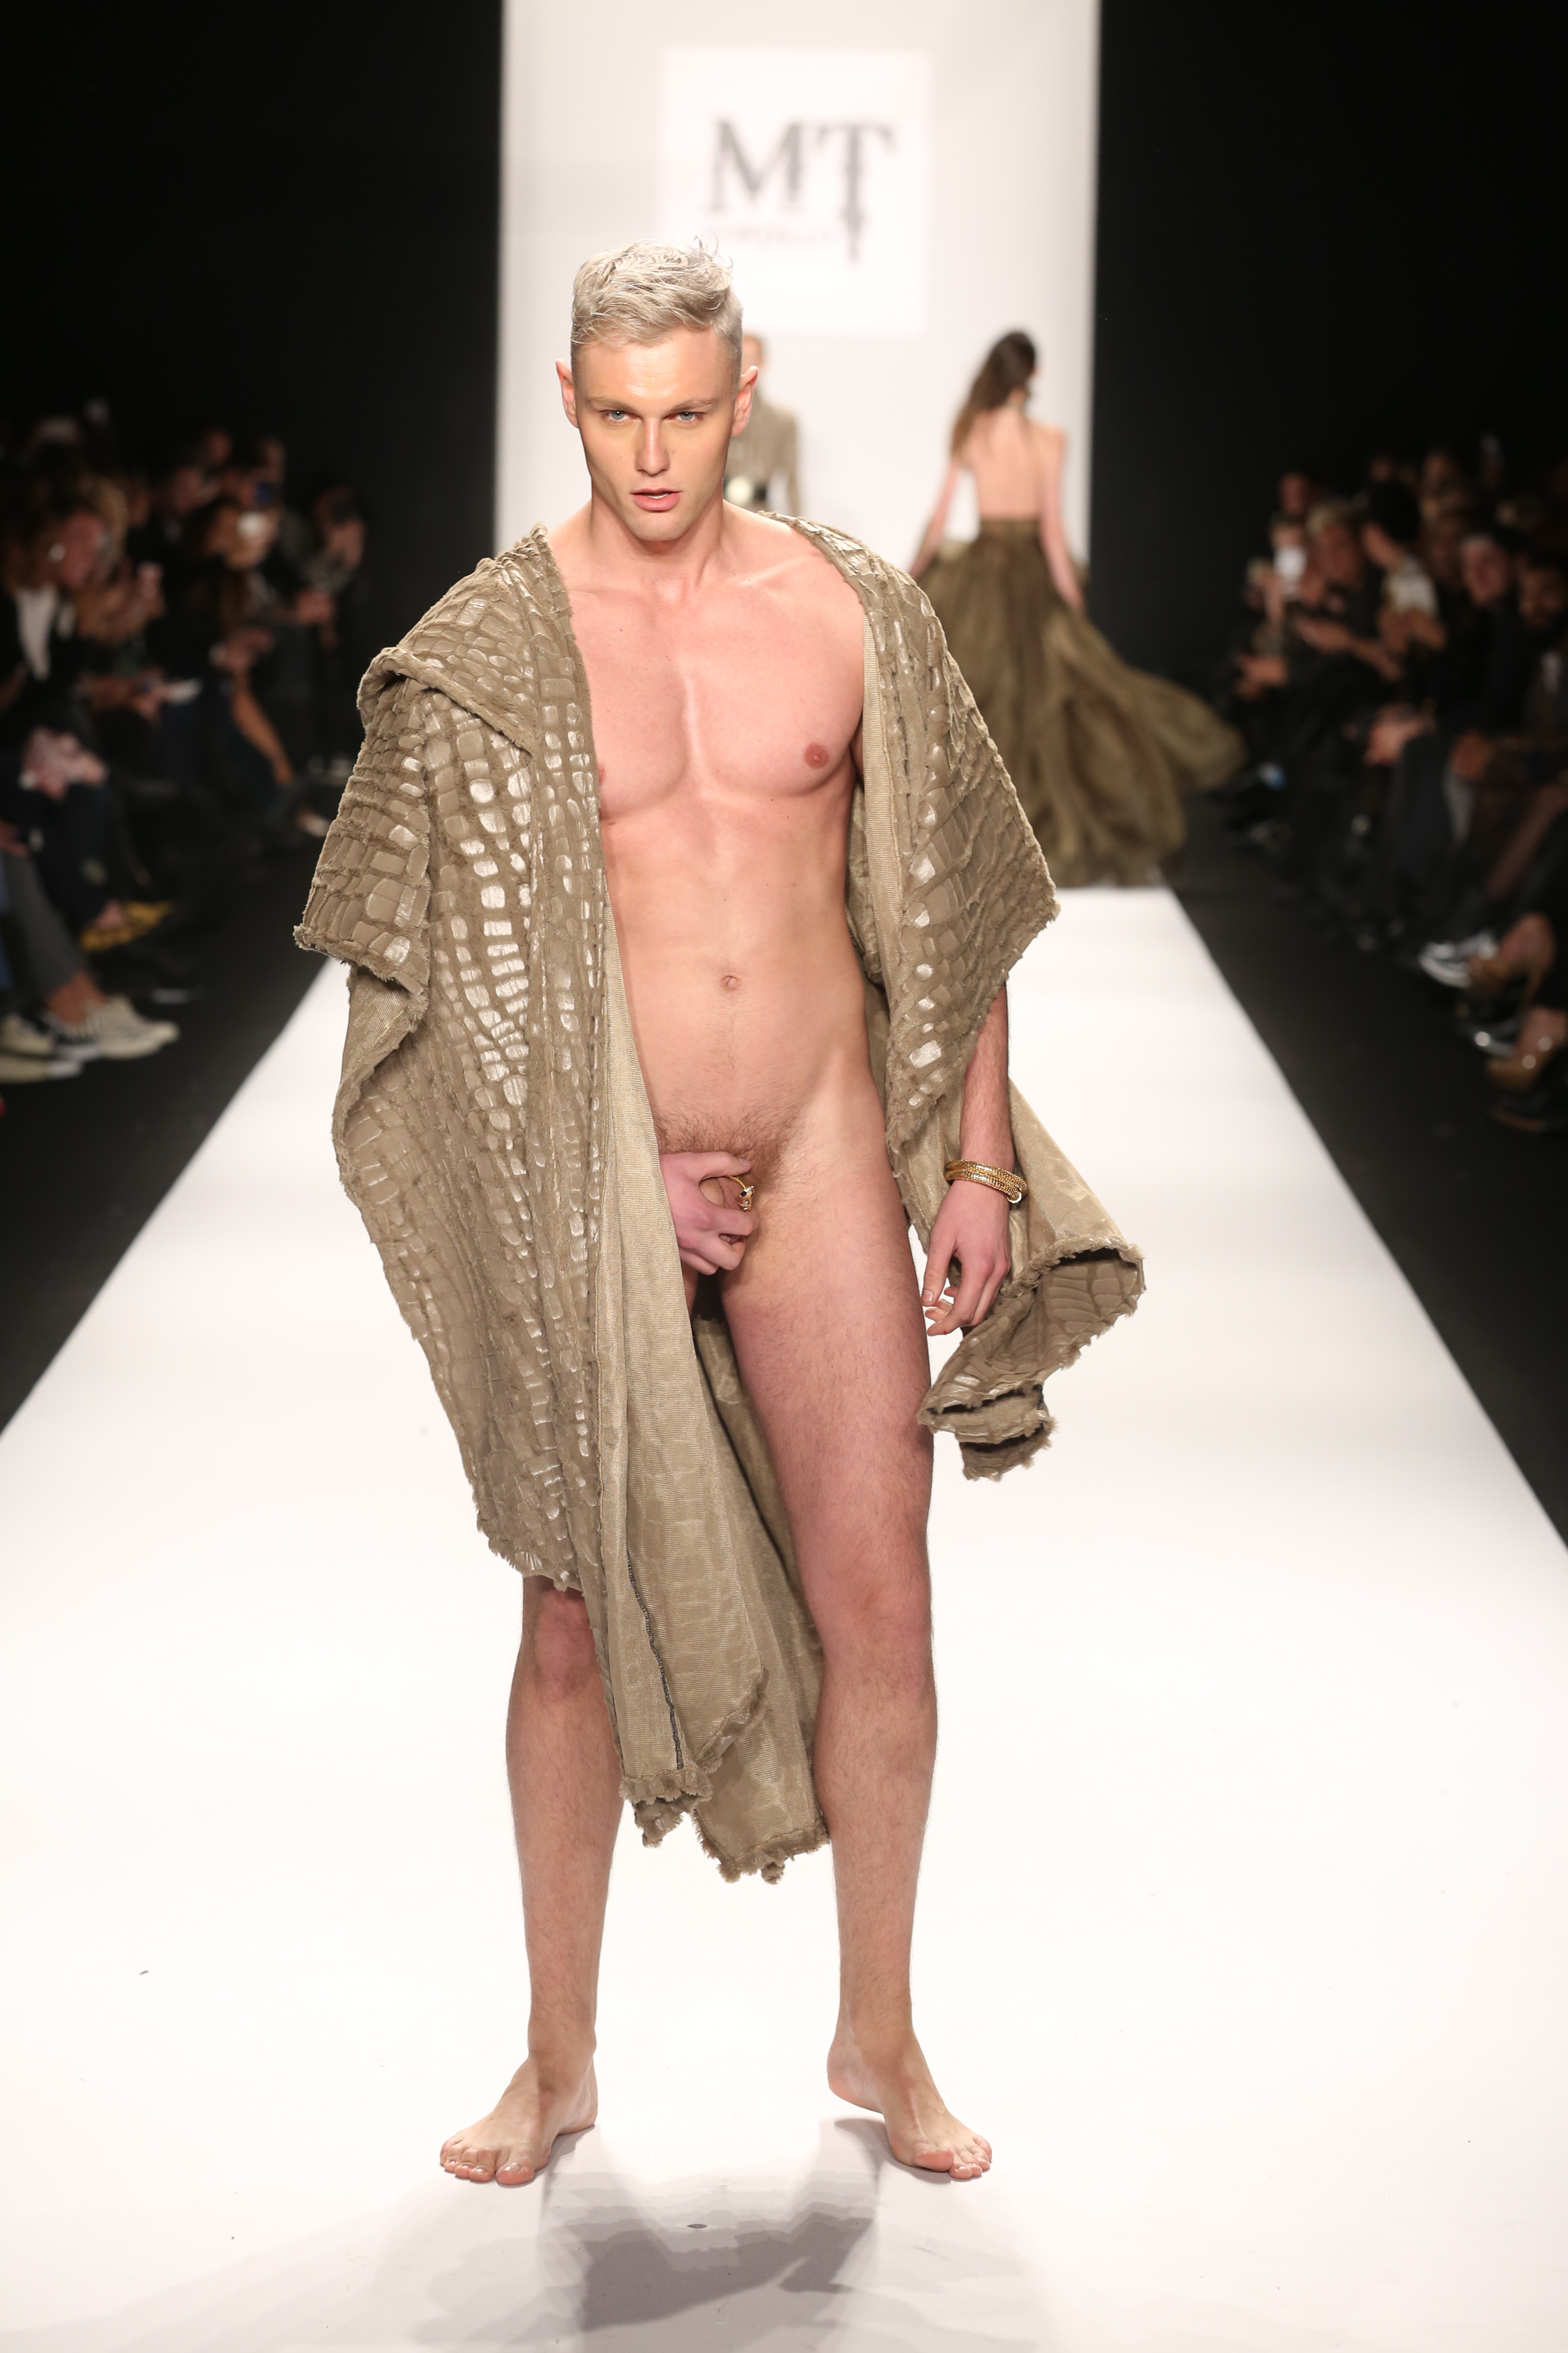 Male Model Naked Runway